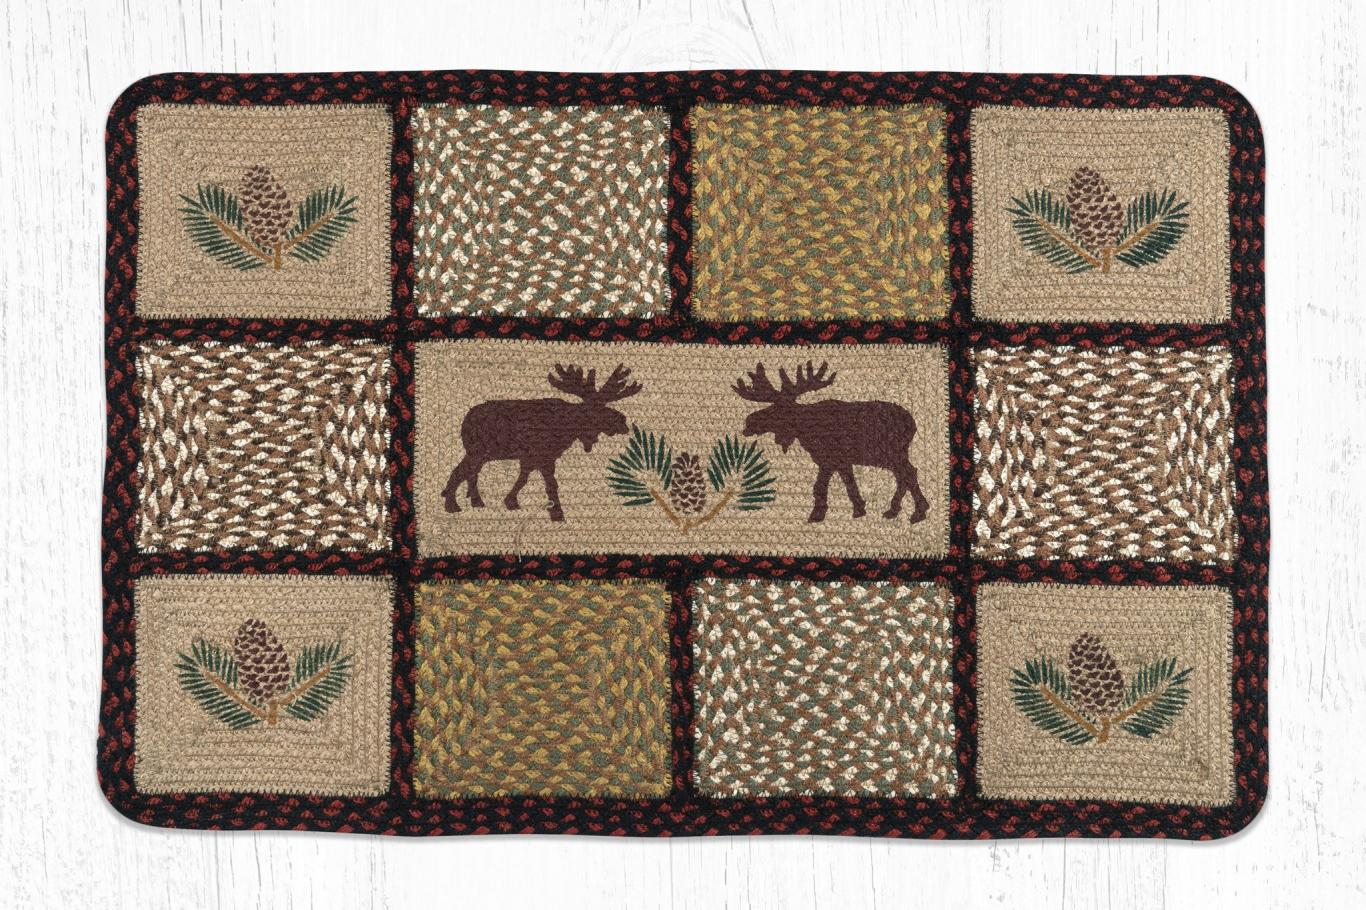 Earth Rugs - Moose Pinecone Printed Quilt Patch Rug -2